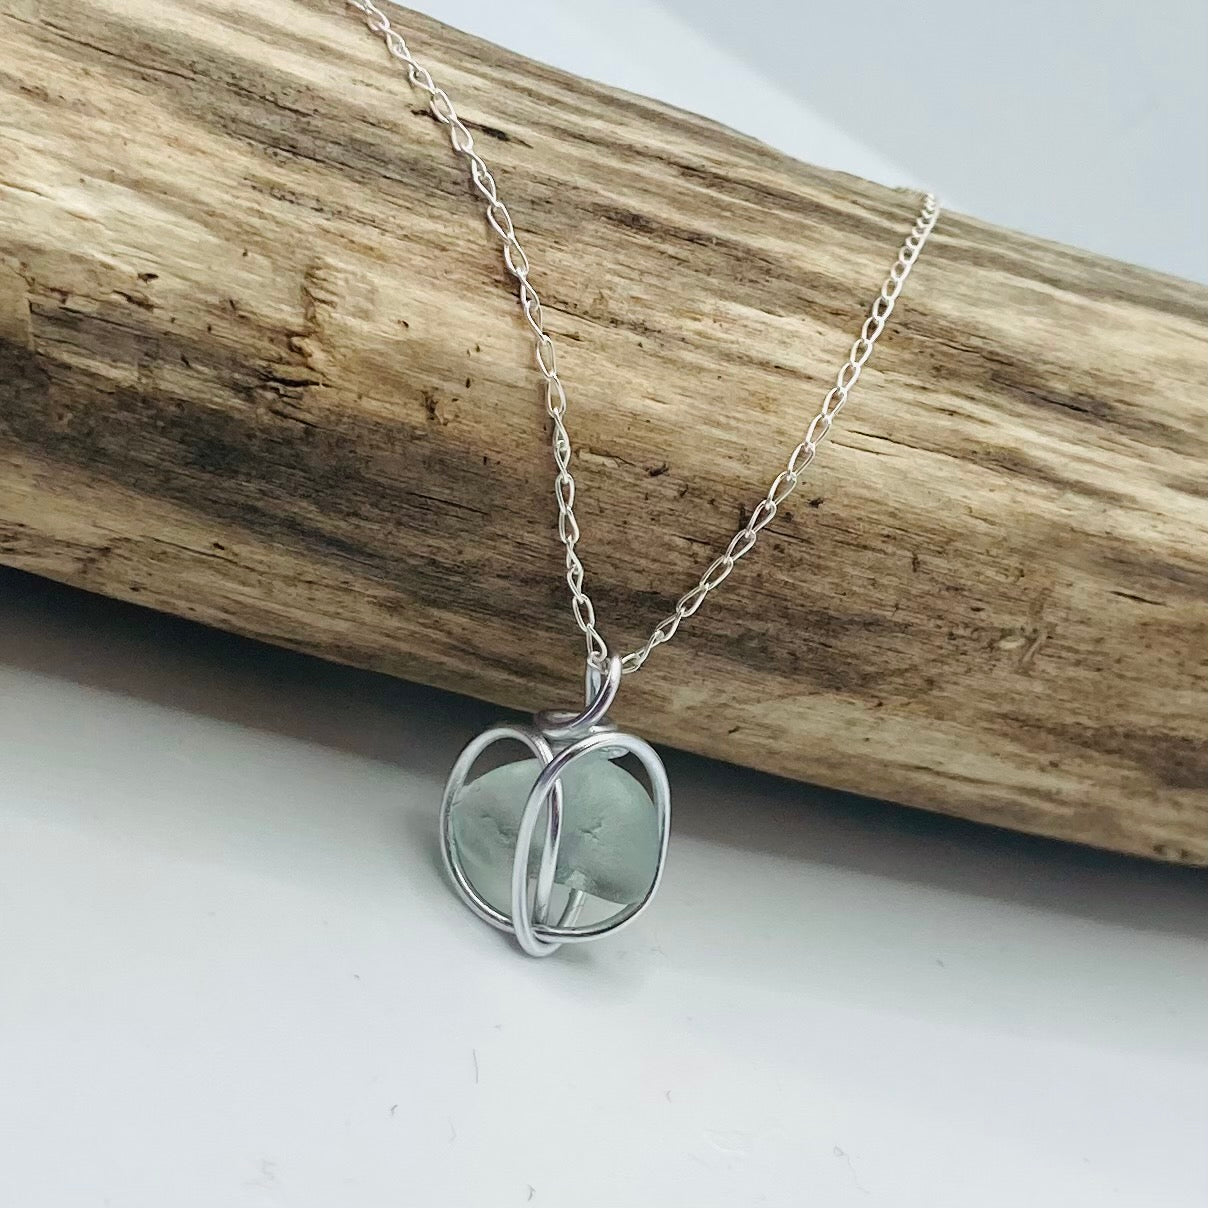 Pembrokeshire Sea Glass Seafoam Heart Pendant